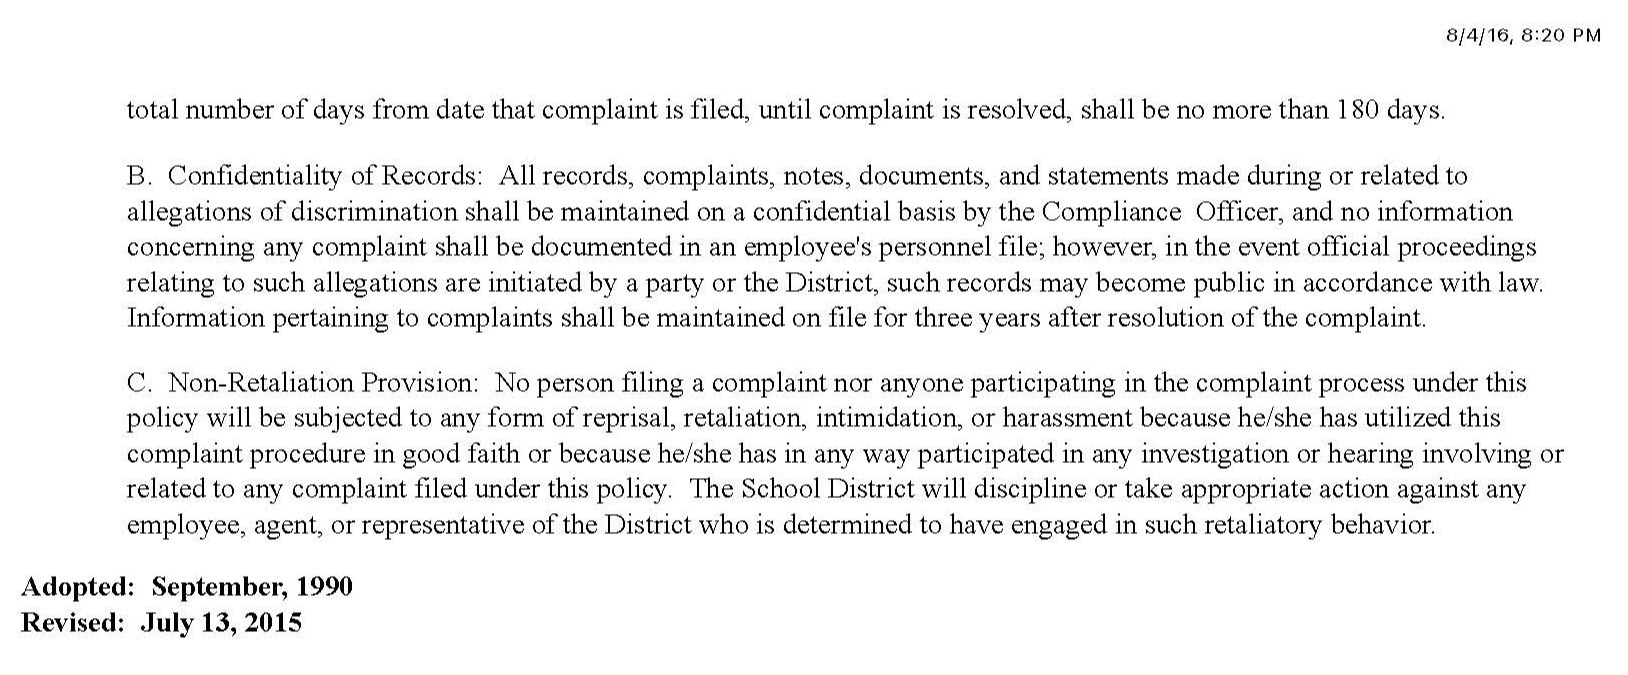 Page 3 of the Title Compliance